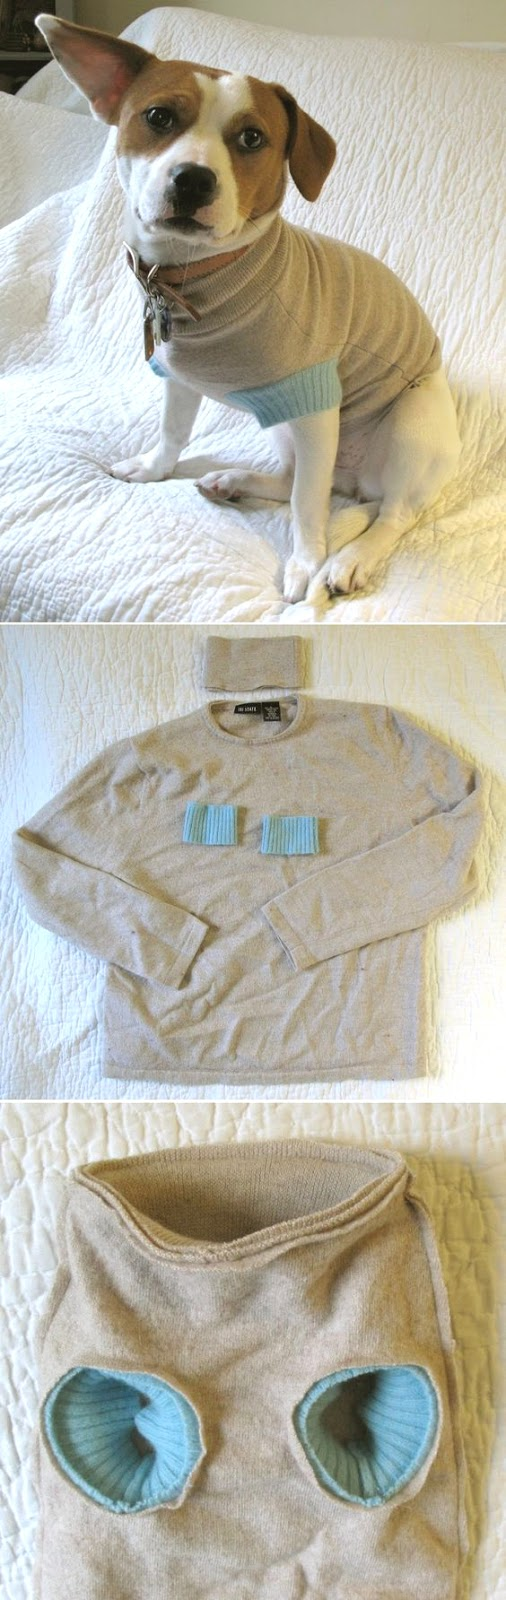 4 diy dog sweater and coat patterns handy homemade. Black Bedroom Furniture Sets. Home Design Ideas